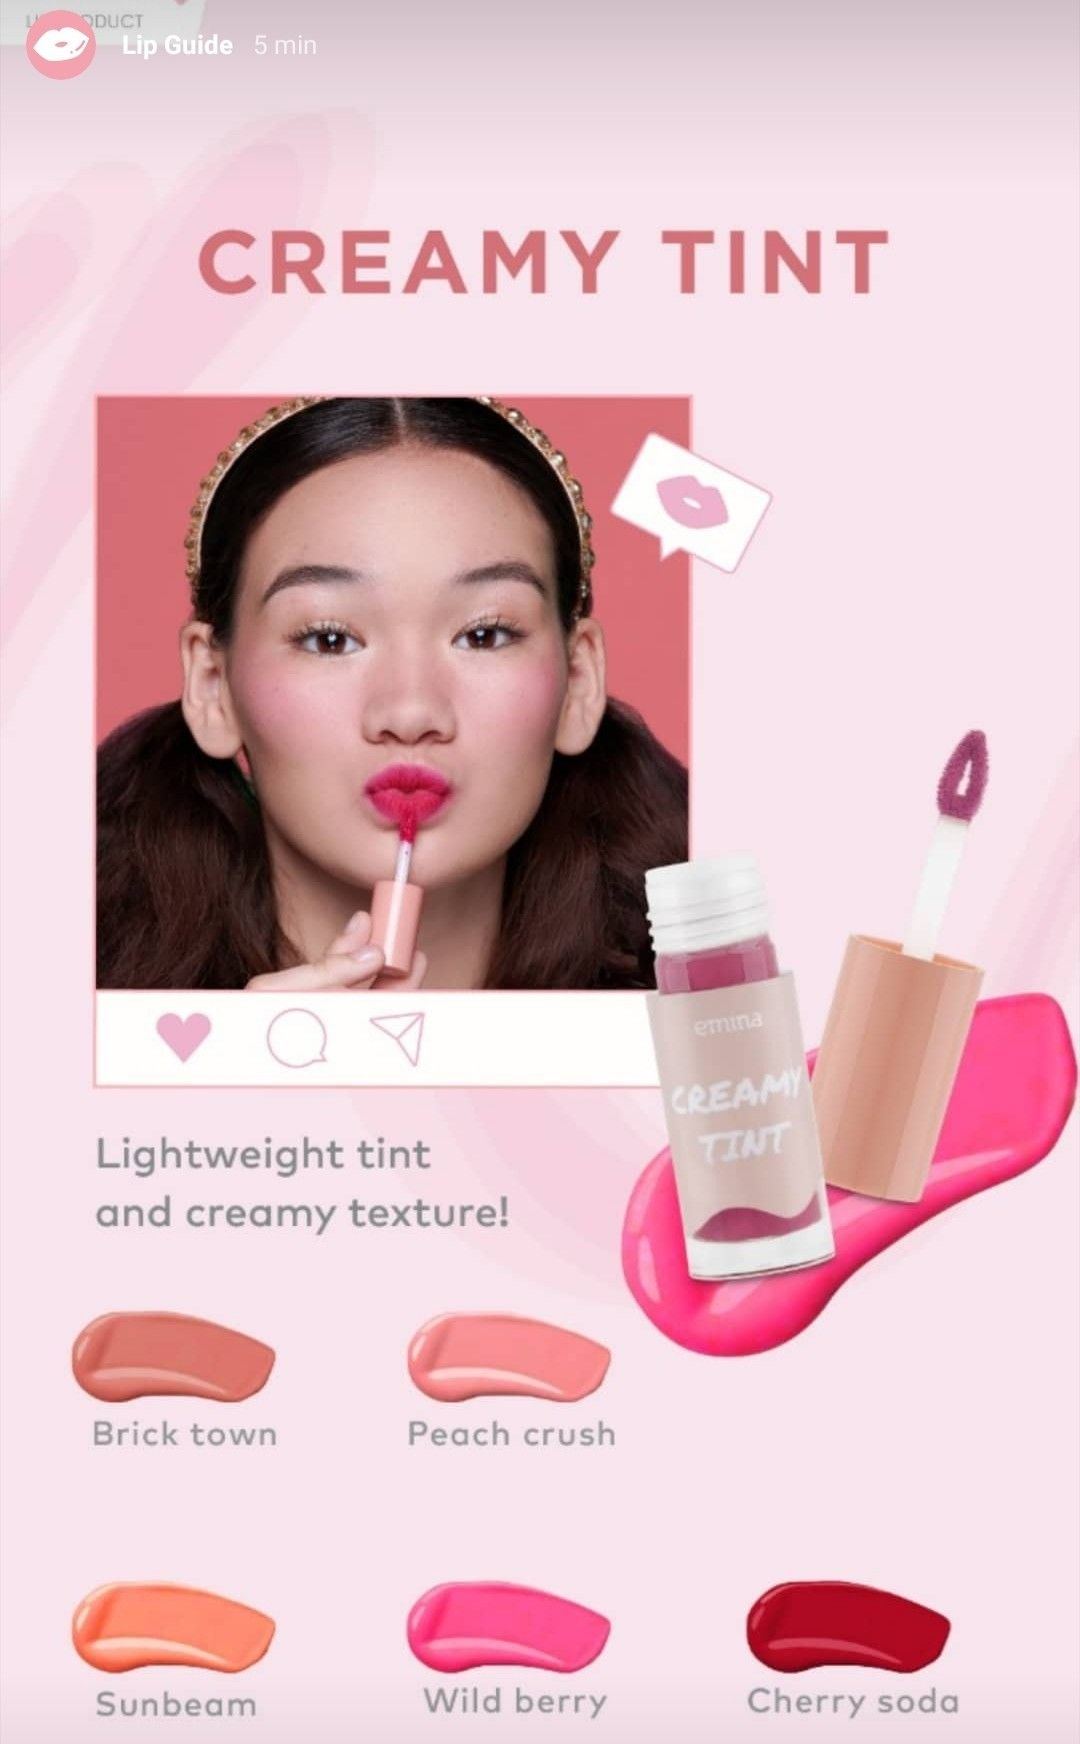 Pin by SweetDream on Makeup in 2020 Skin care, Lips, Lip